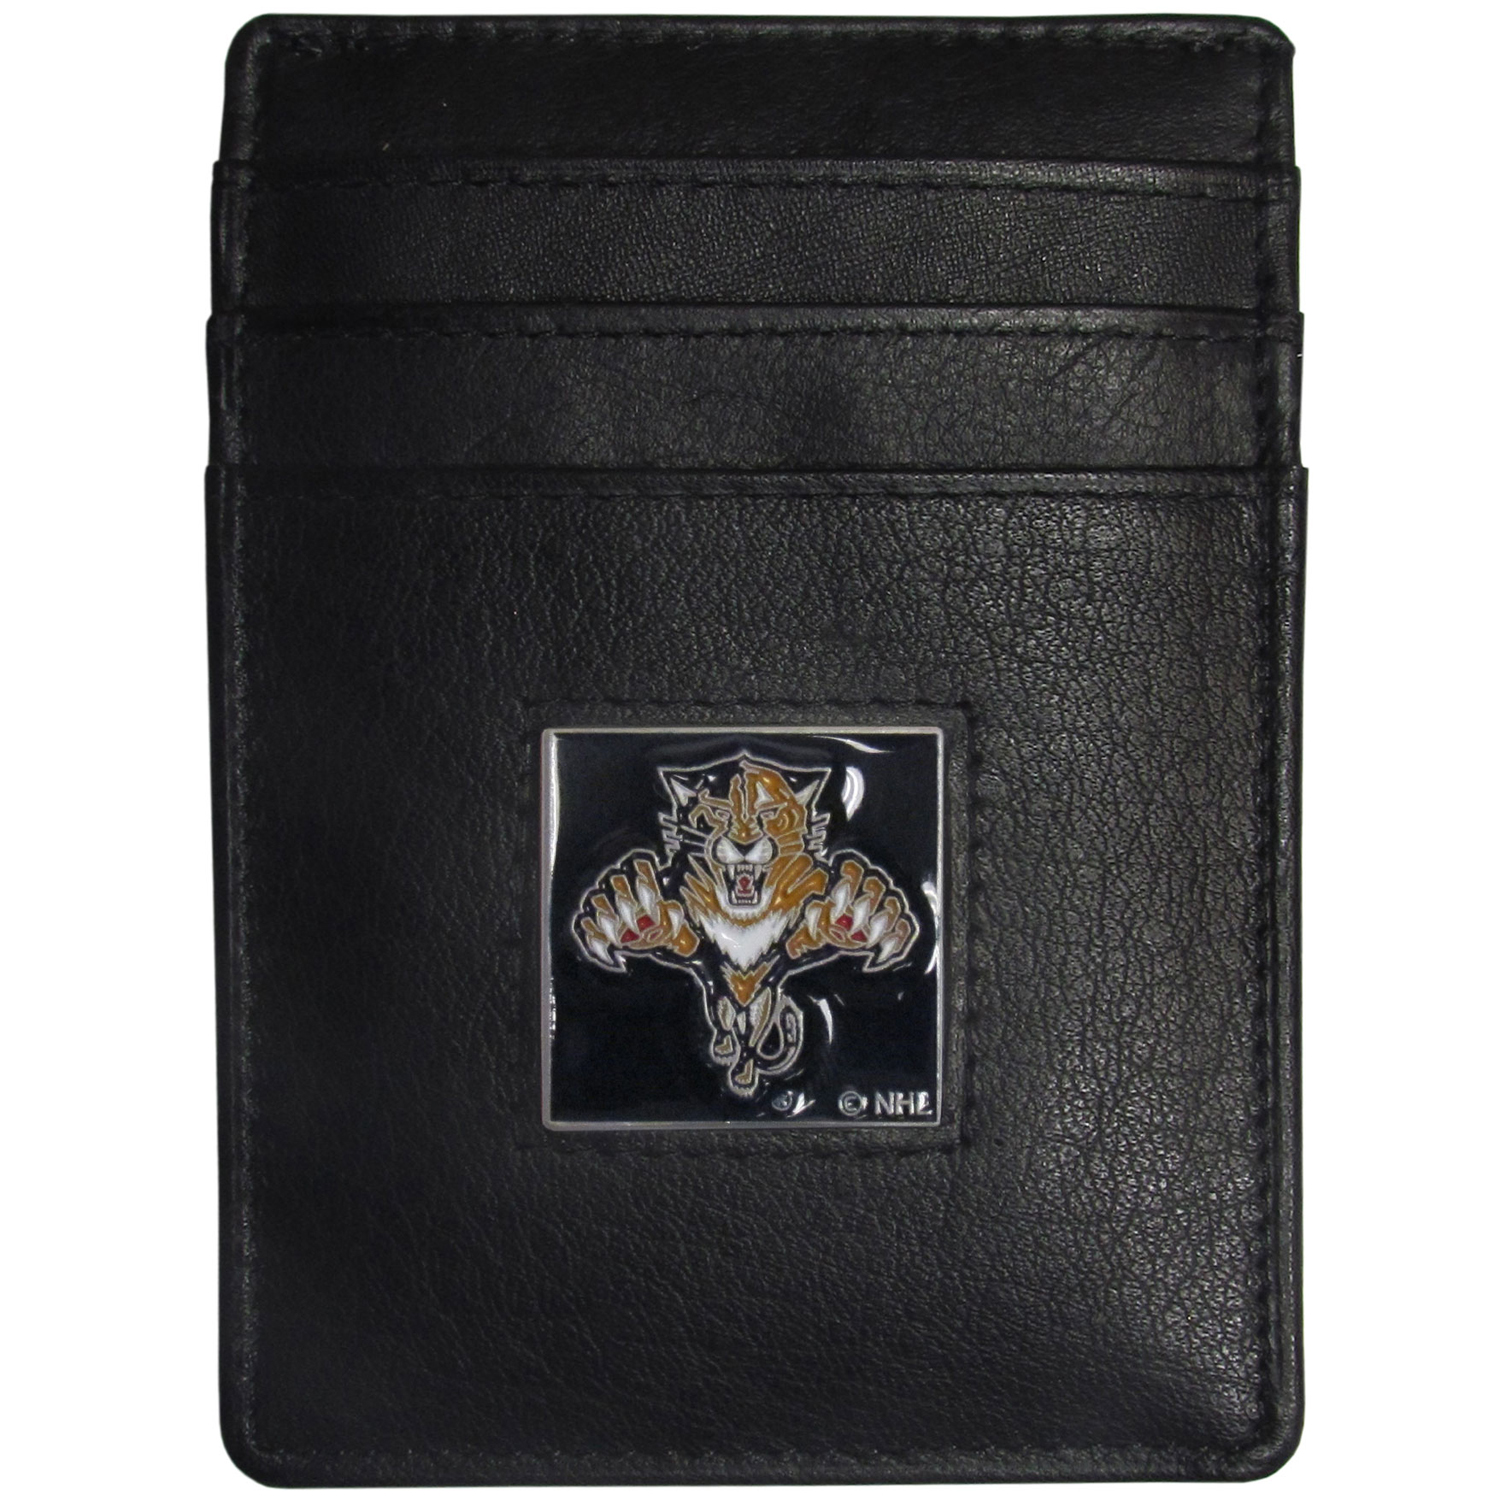 Florida Panthers® Leather Money Clip/Cardholder - Our officially licensed Money Clip/Card Holders won't make you choose between paper or plastic because they stow both easily. Features our sculpted and enameled Florida Panthers® emblem on the front of the wallet.